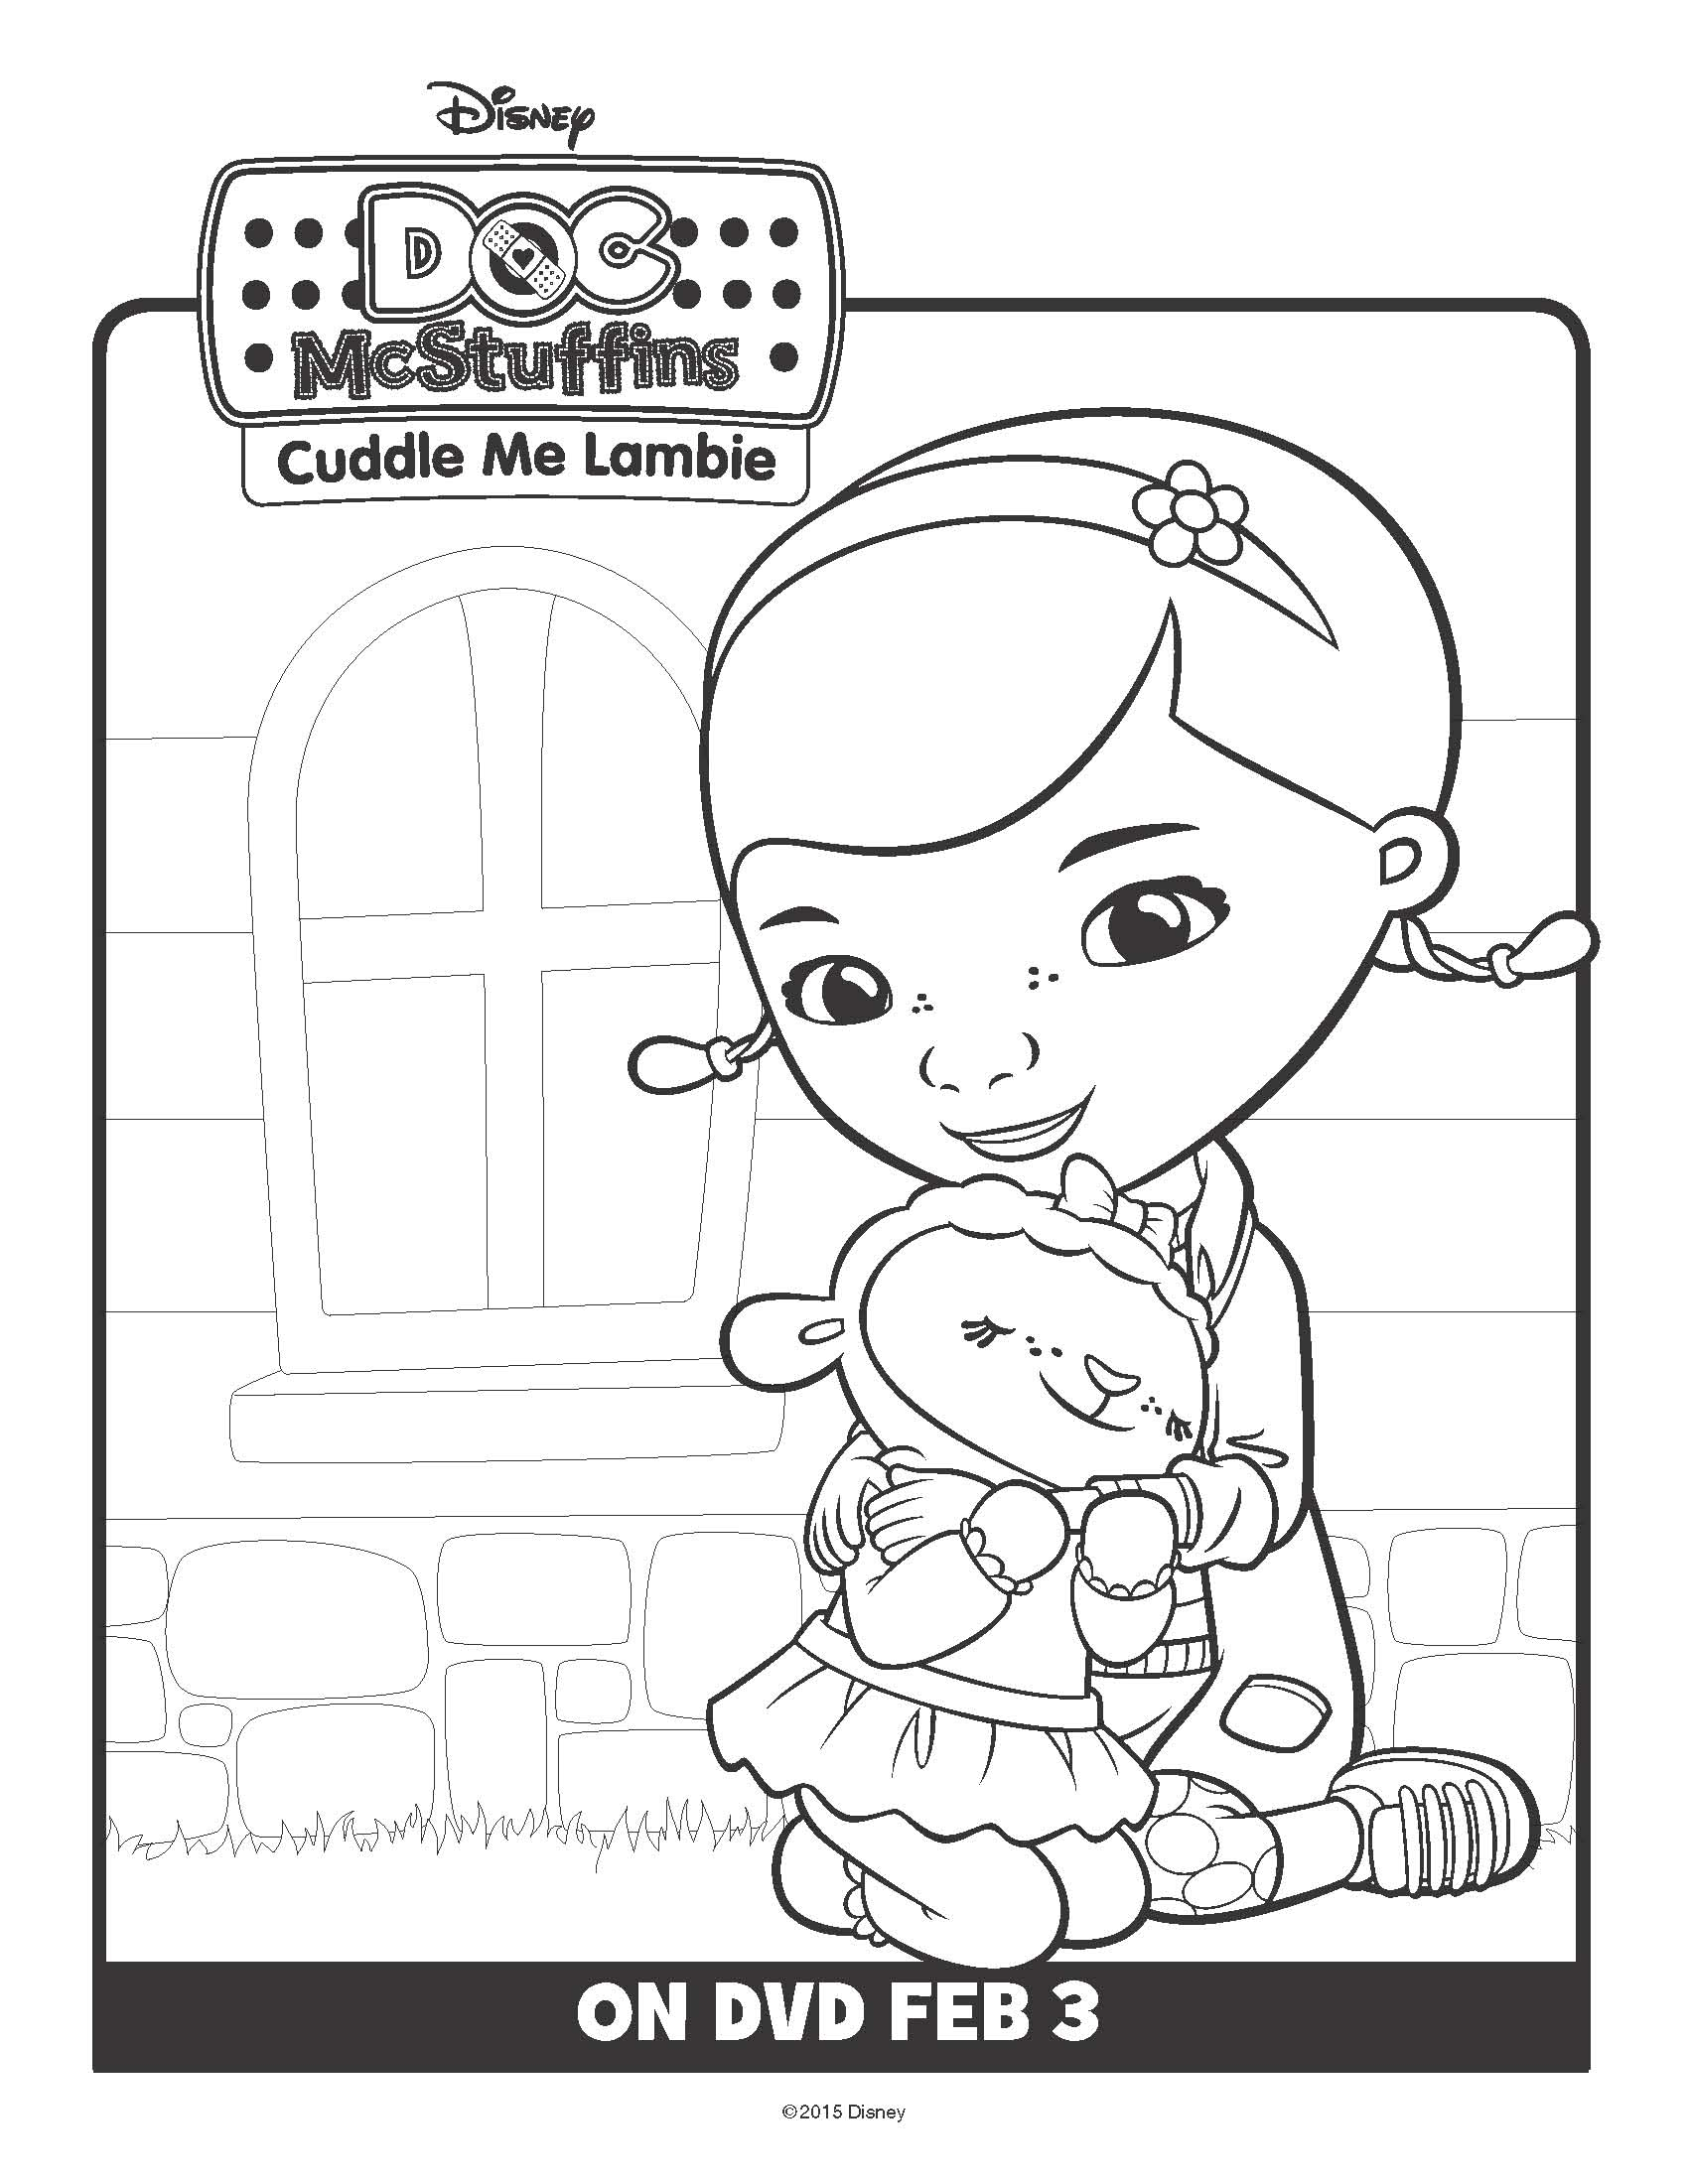 Doc McStuffins: Cuddle Me Lambie! on DVD February 3! Free